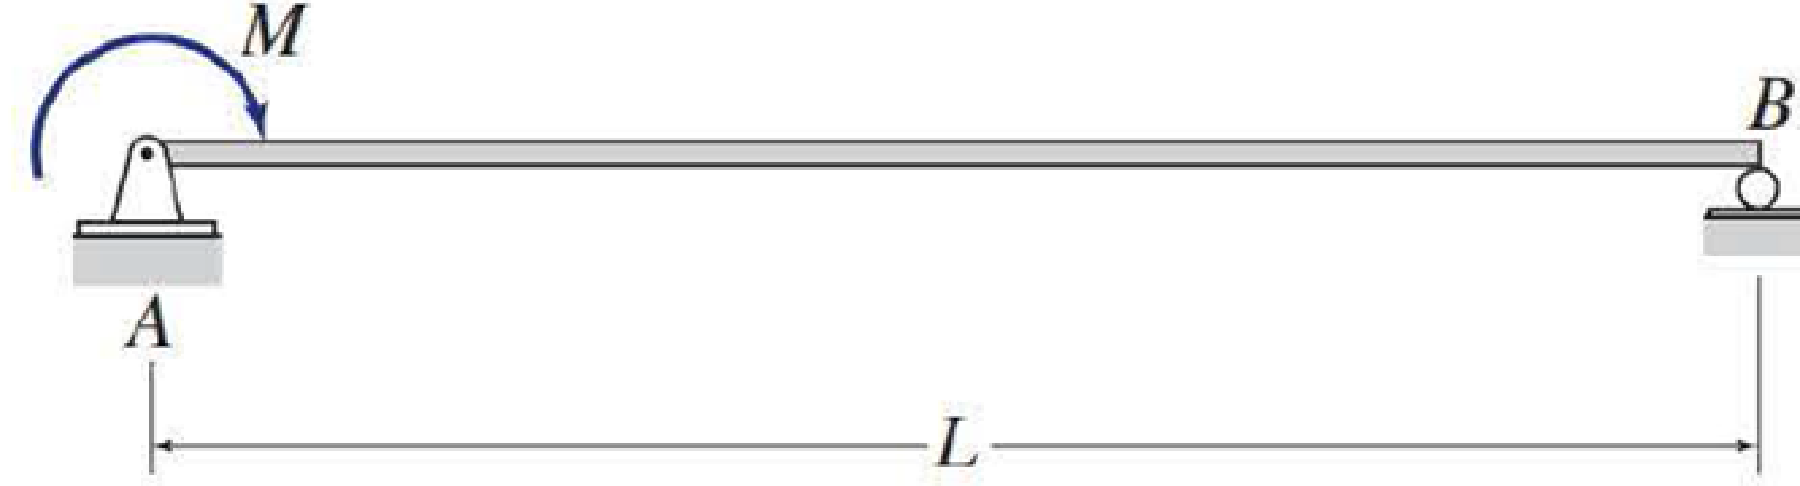 Chapter 6, Problem 1P, 6.1 through 6.6 Determine the equations for slope and deflection of the beam shown by the direct